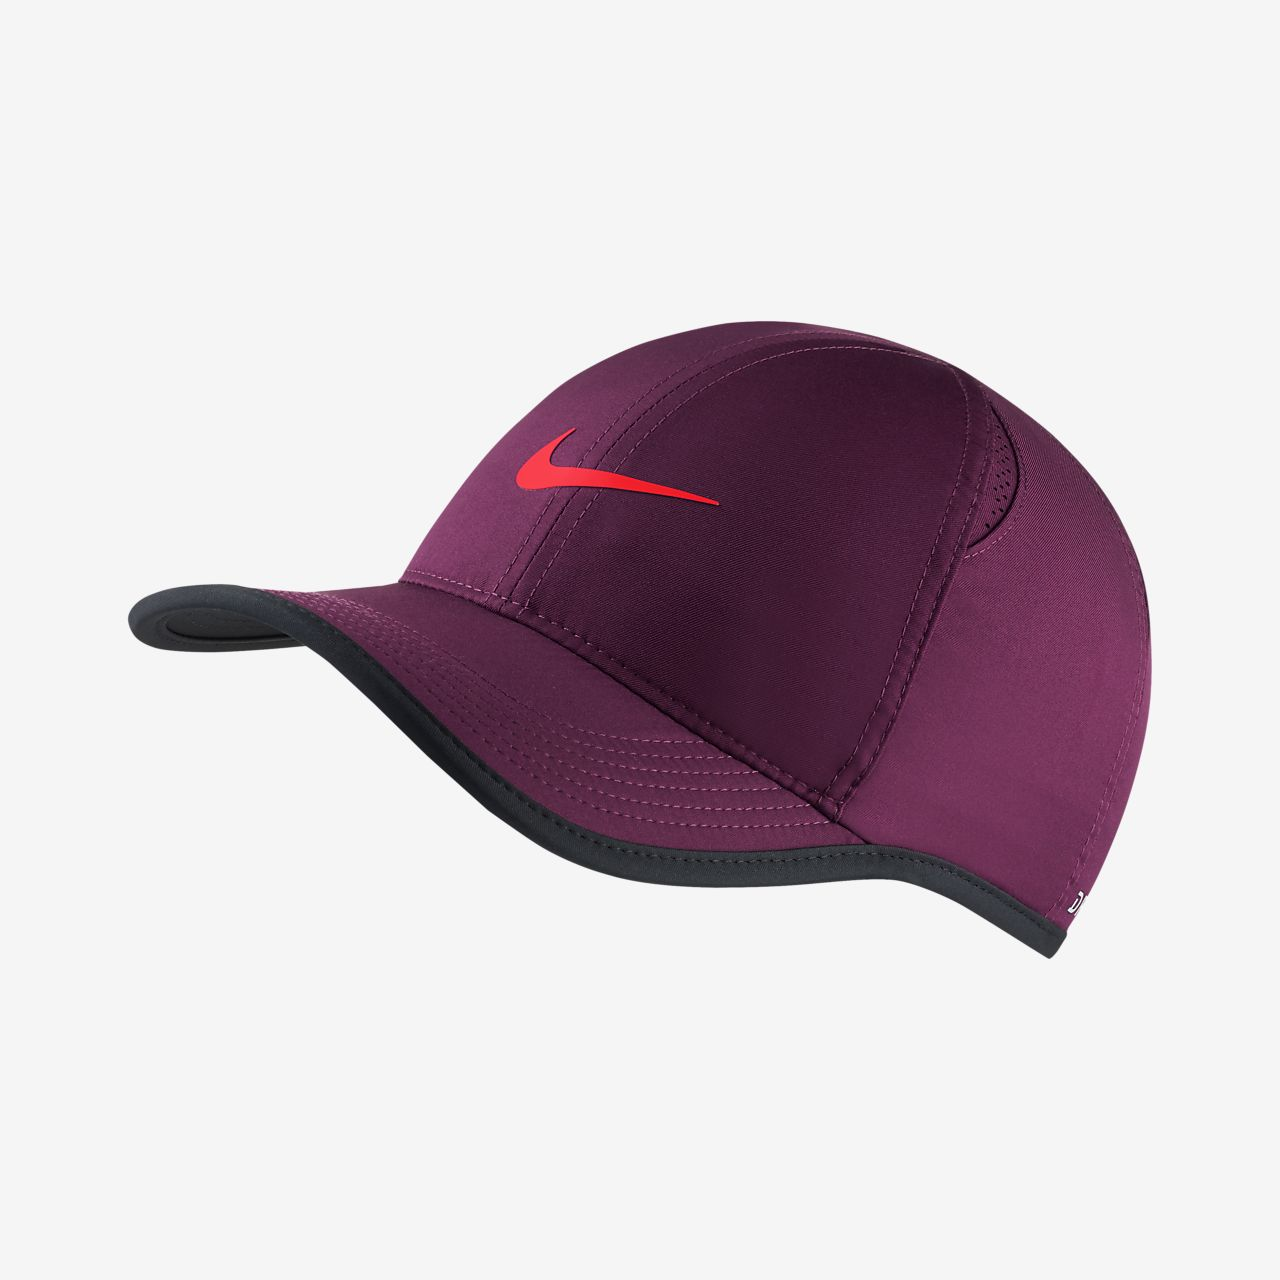 93040923eb010 Low Resolution NikeCourt AeroBill Featherlight Tennis Cap NikeCourt  AeroBill Featherlight Tennis Cap